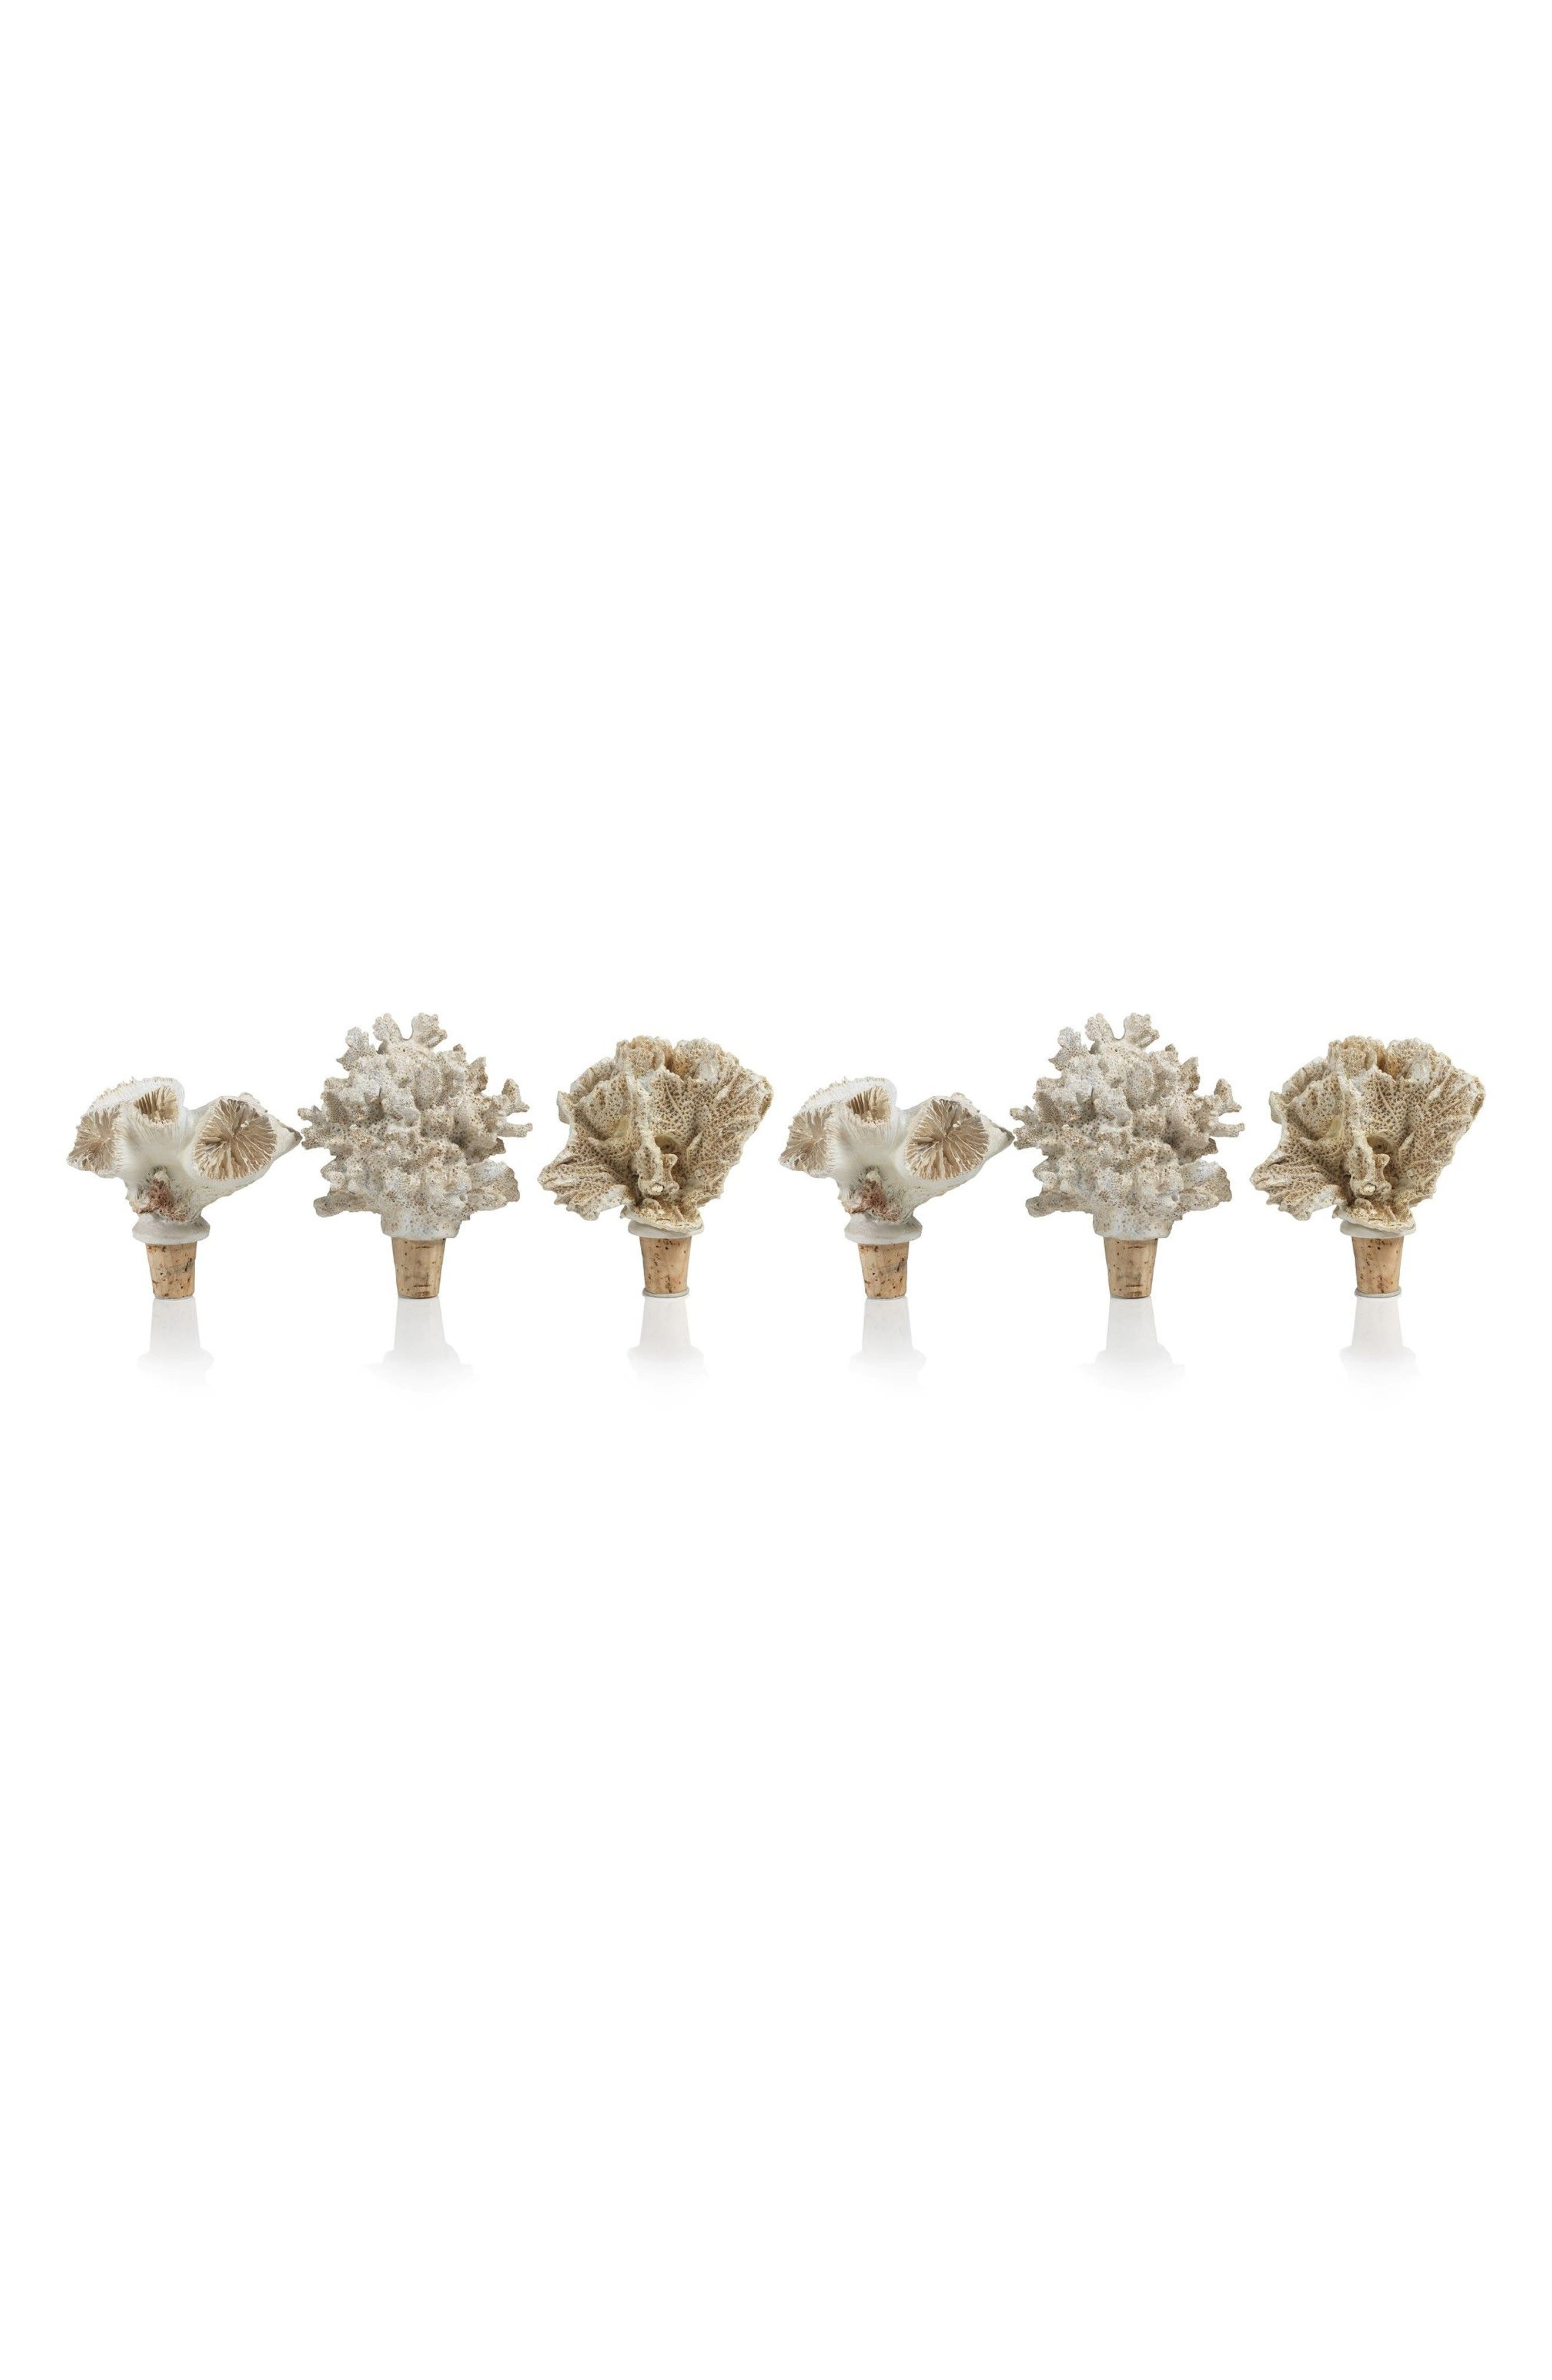 Main Image - Zodax Sea Coral Set of 6 Bottle Stoppers